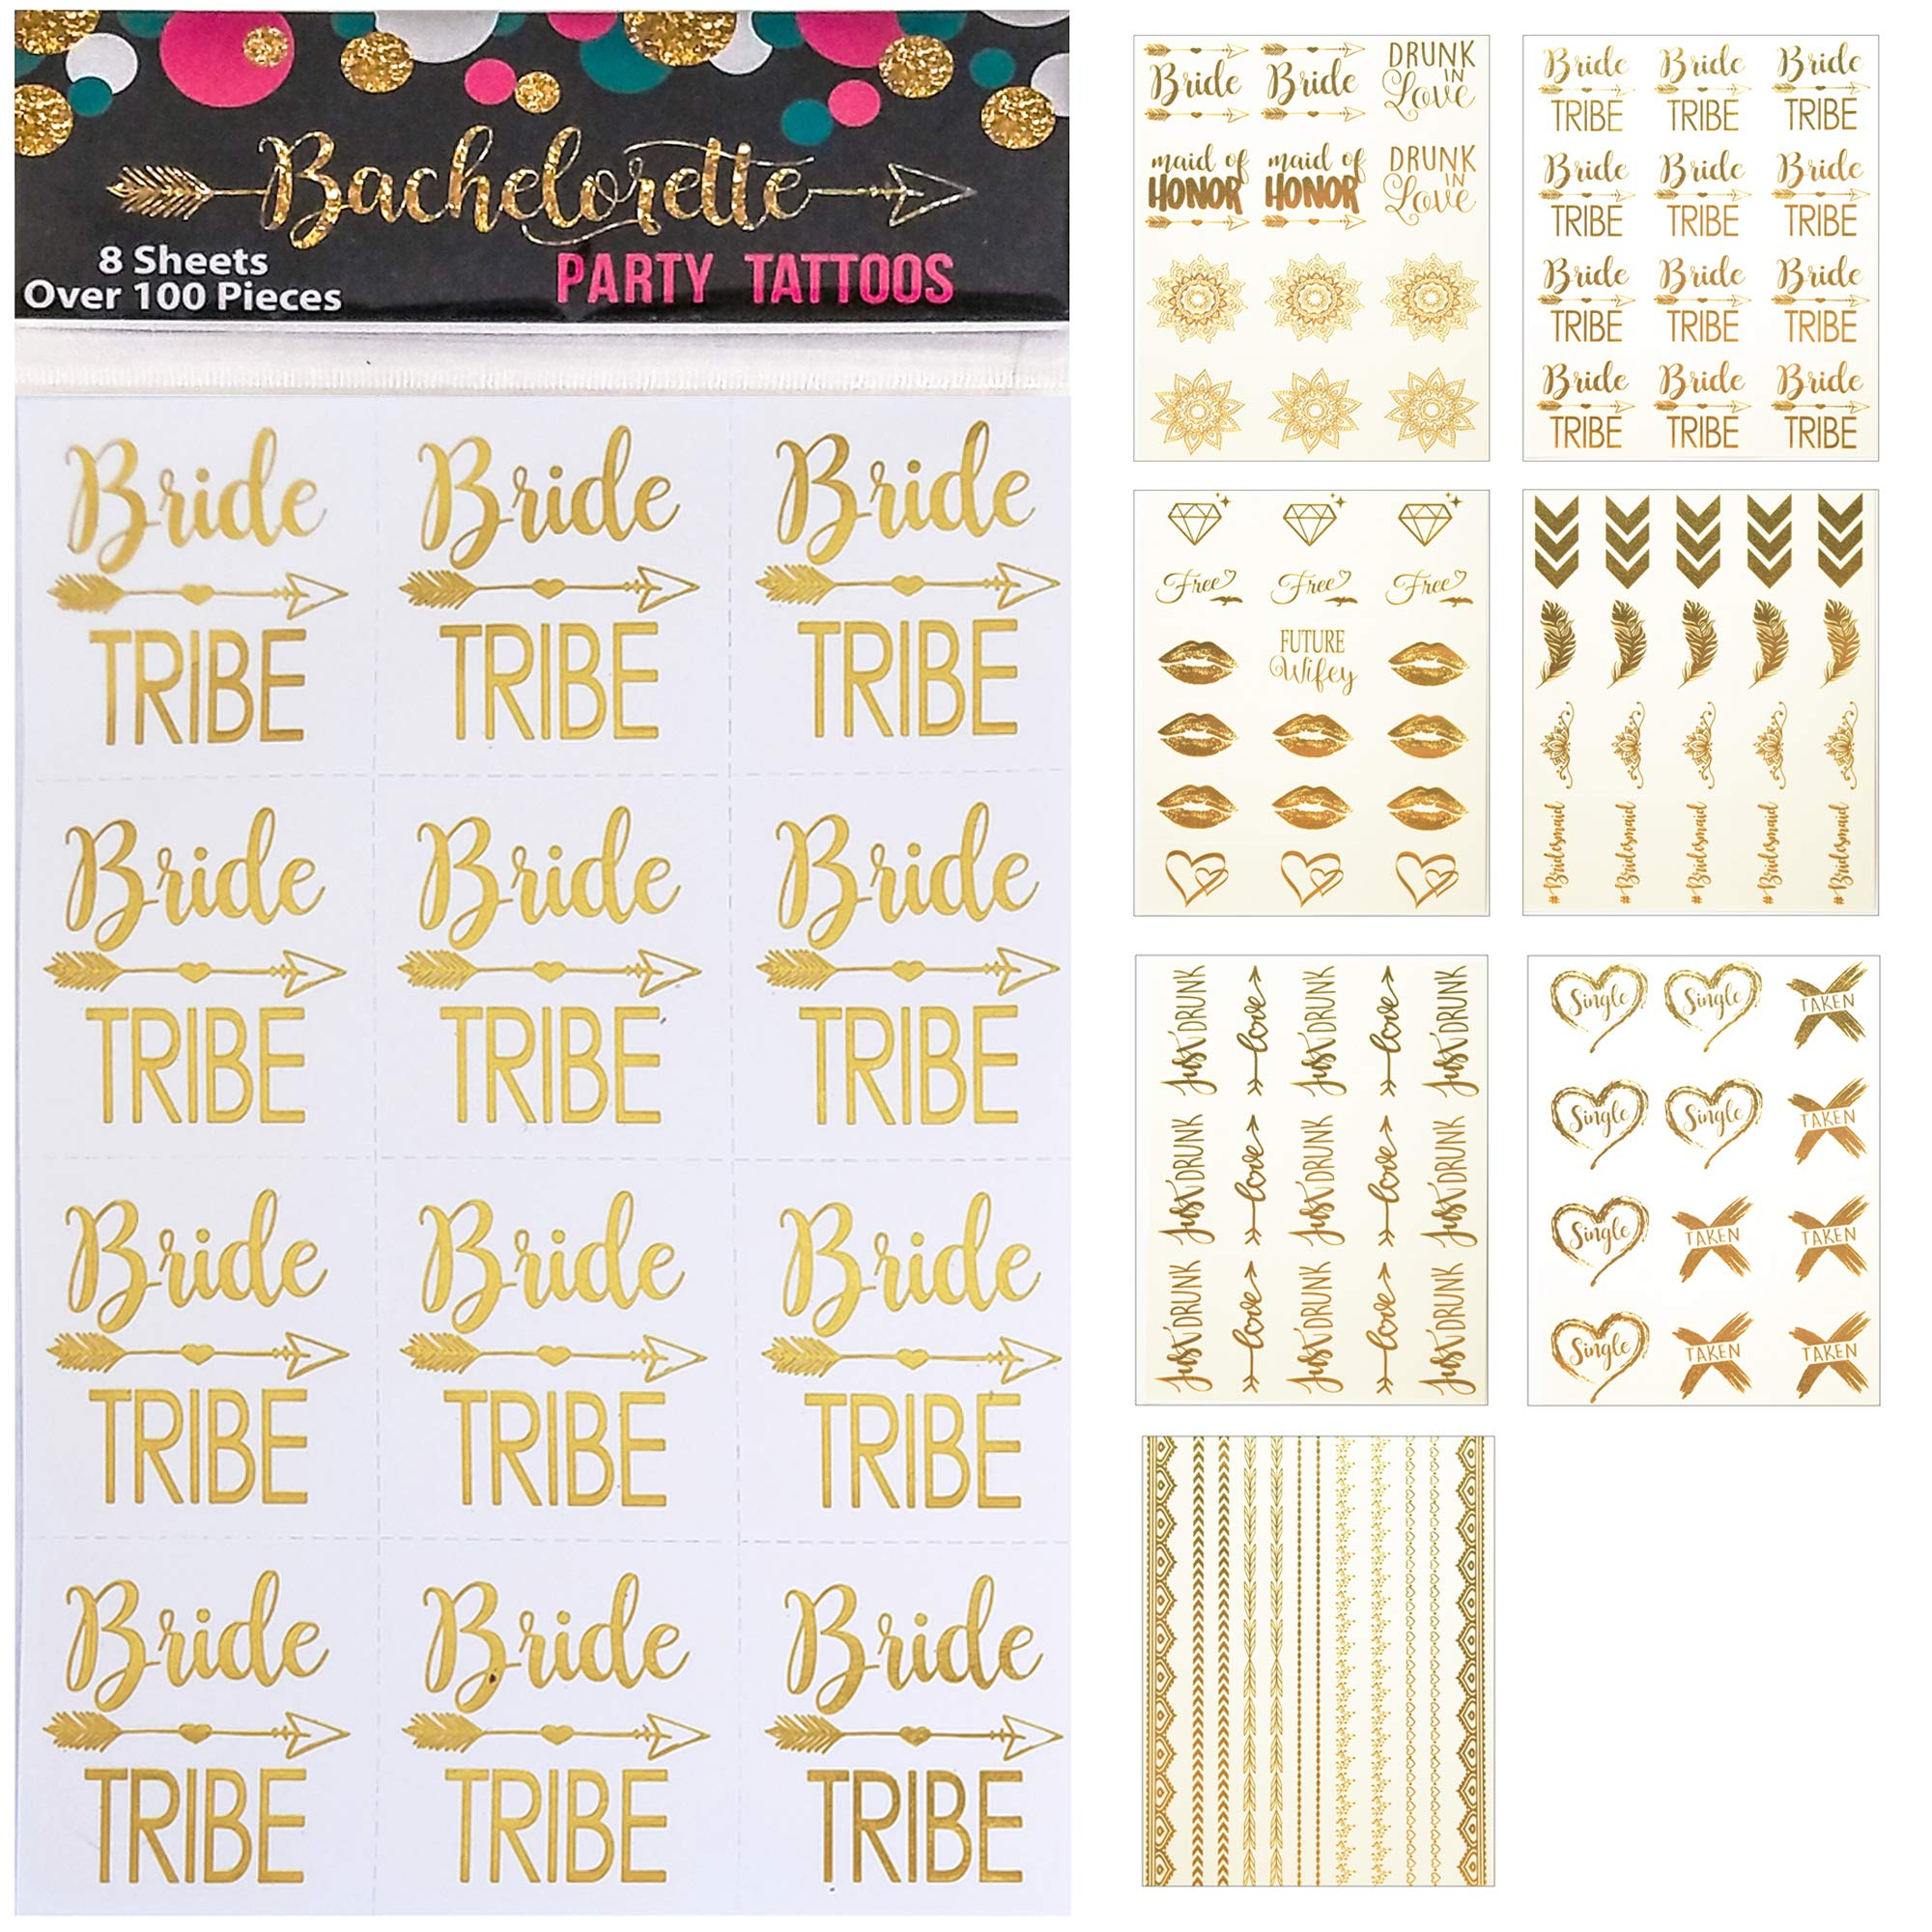 119 pc Bachelorette Party Tattoos/Bride Flash Tattoos (8 Sheets) Perforated Temporary Metallic Gold Tattoos Quick Bridal Shower Party Favor Decorations: Bride Tribe, Bridesmaid, Maid of Honor, Funny by Happy Magnolia